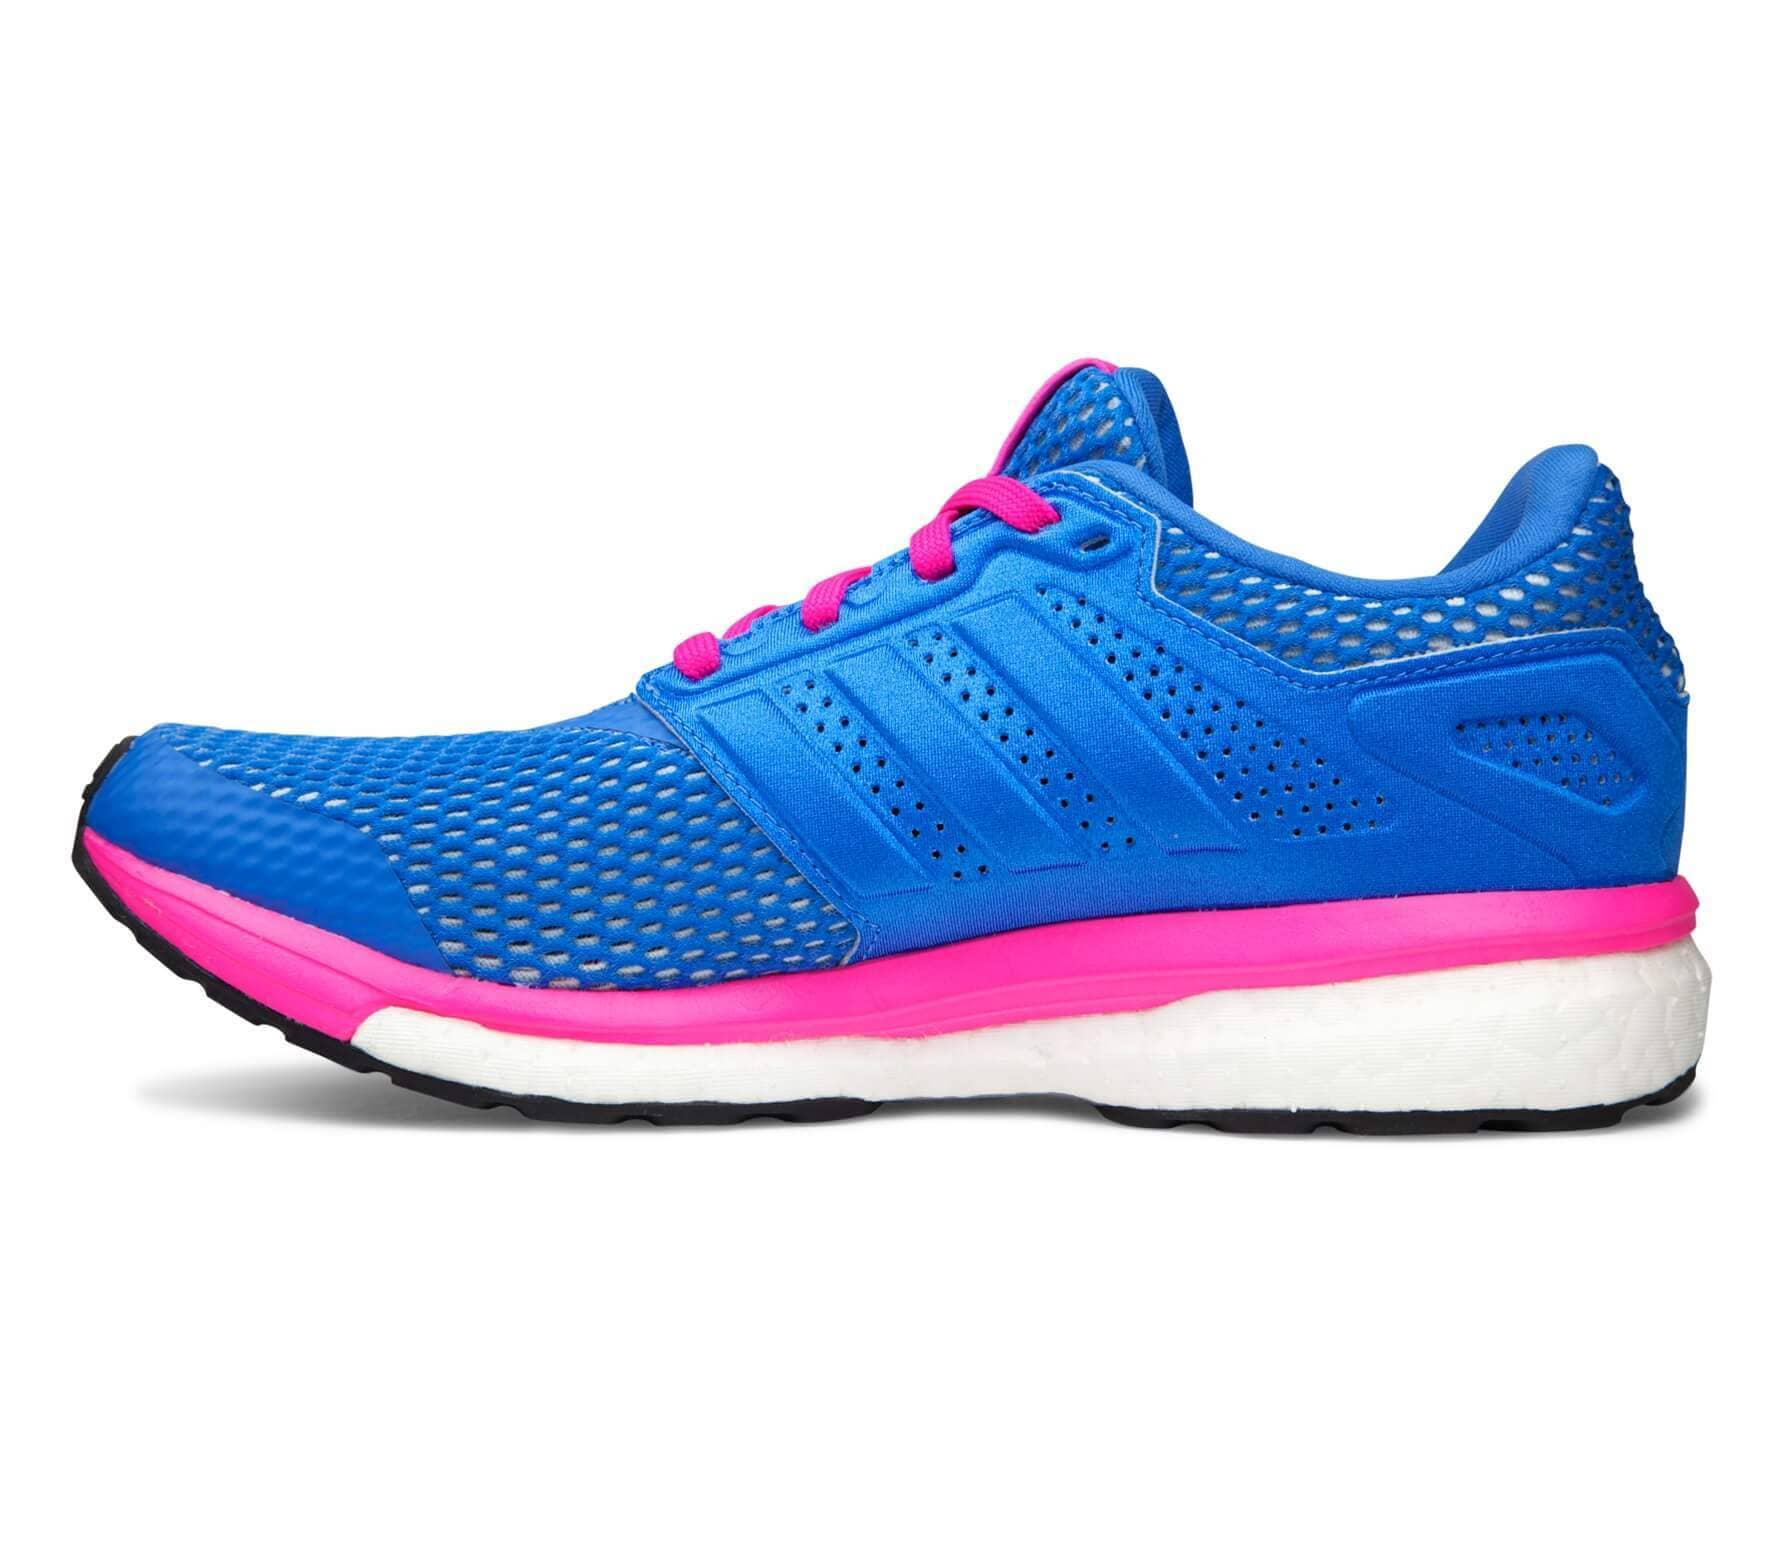 2da90bfdc Adidas - Supernova Glide Boost 8 Chill women s running shoes (blue pink)